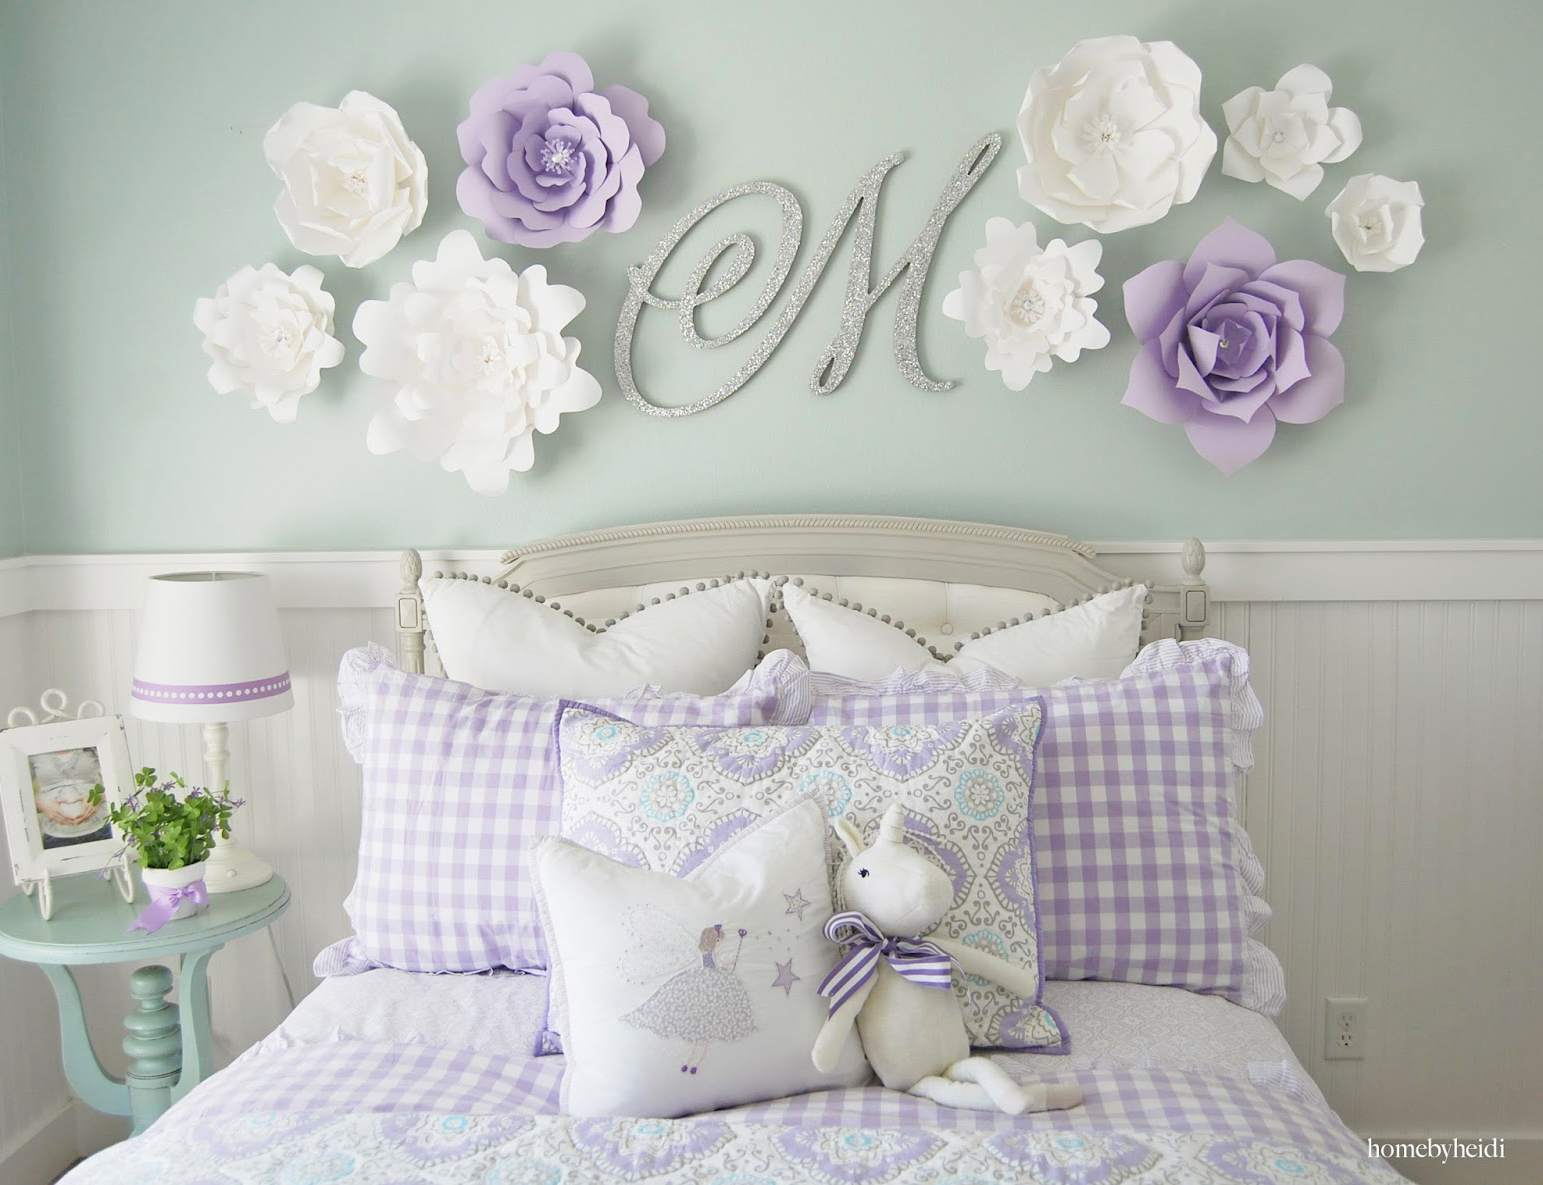 Paper Flower Wall Display With Monogram Letter